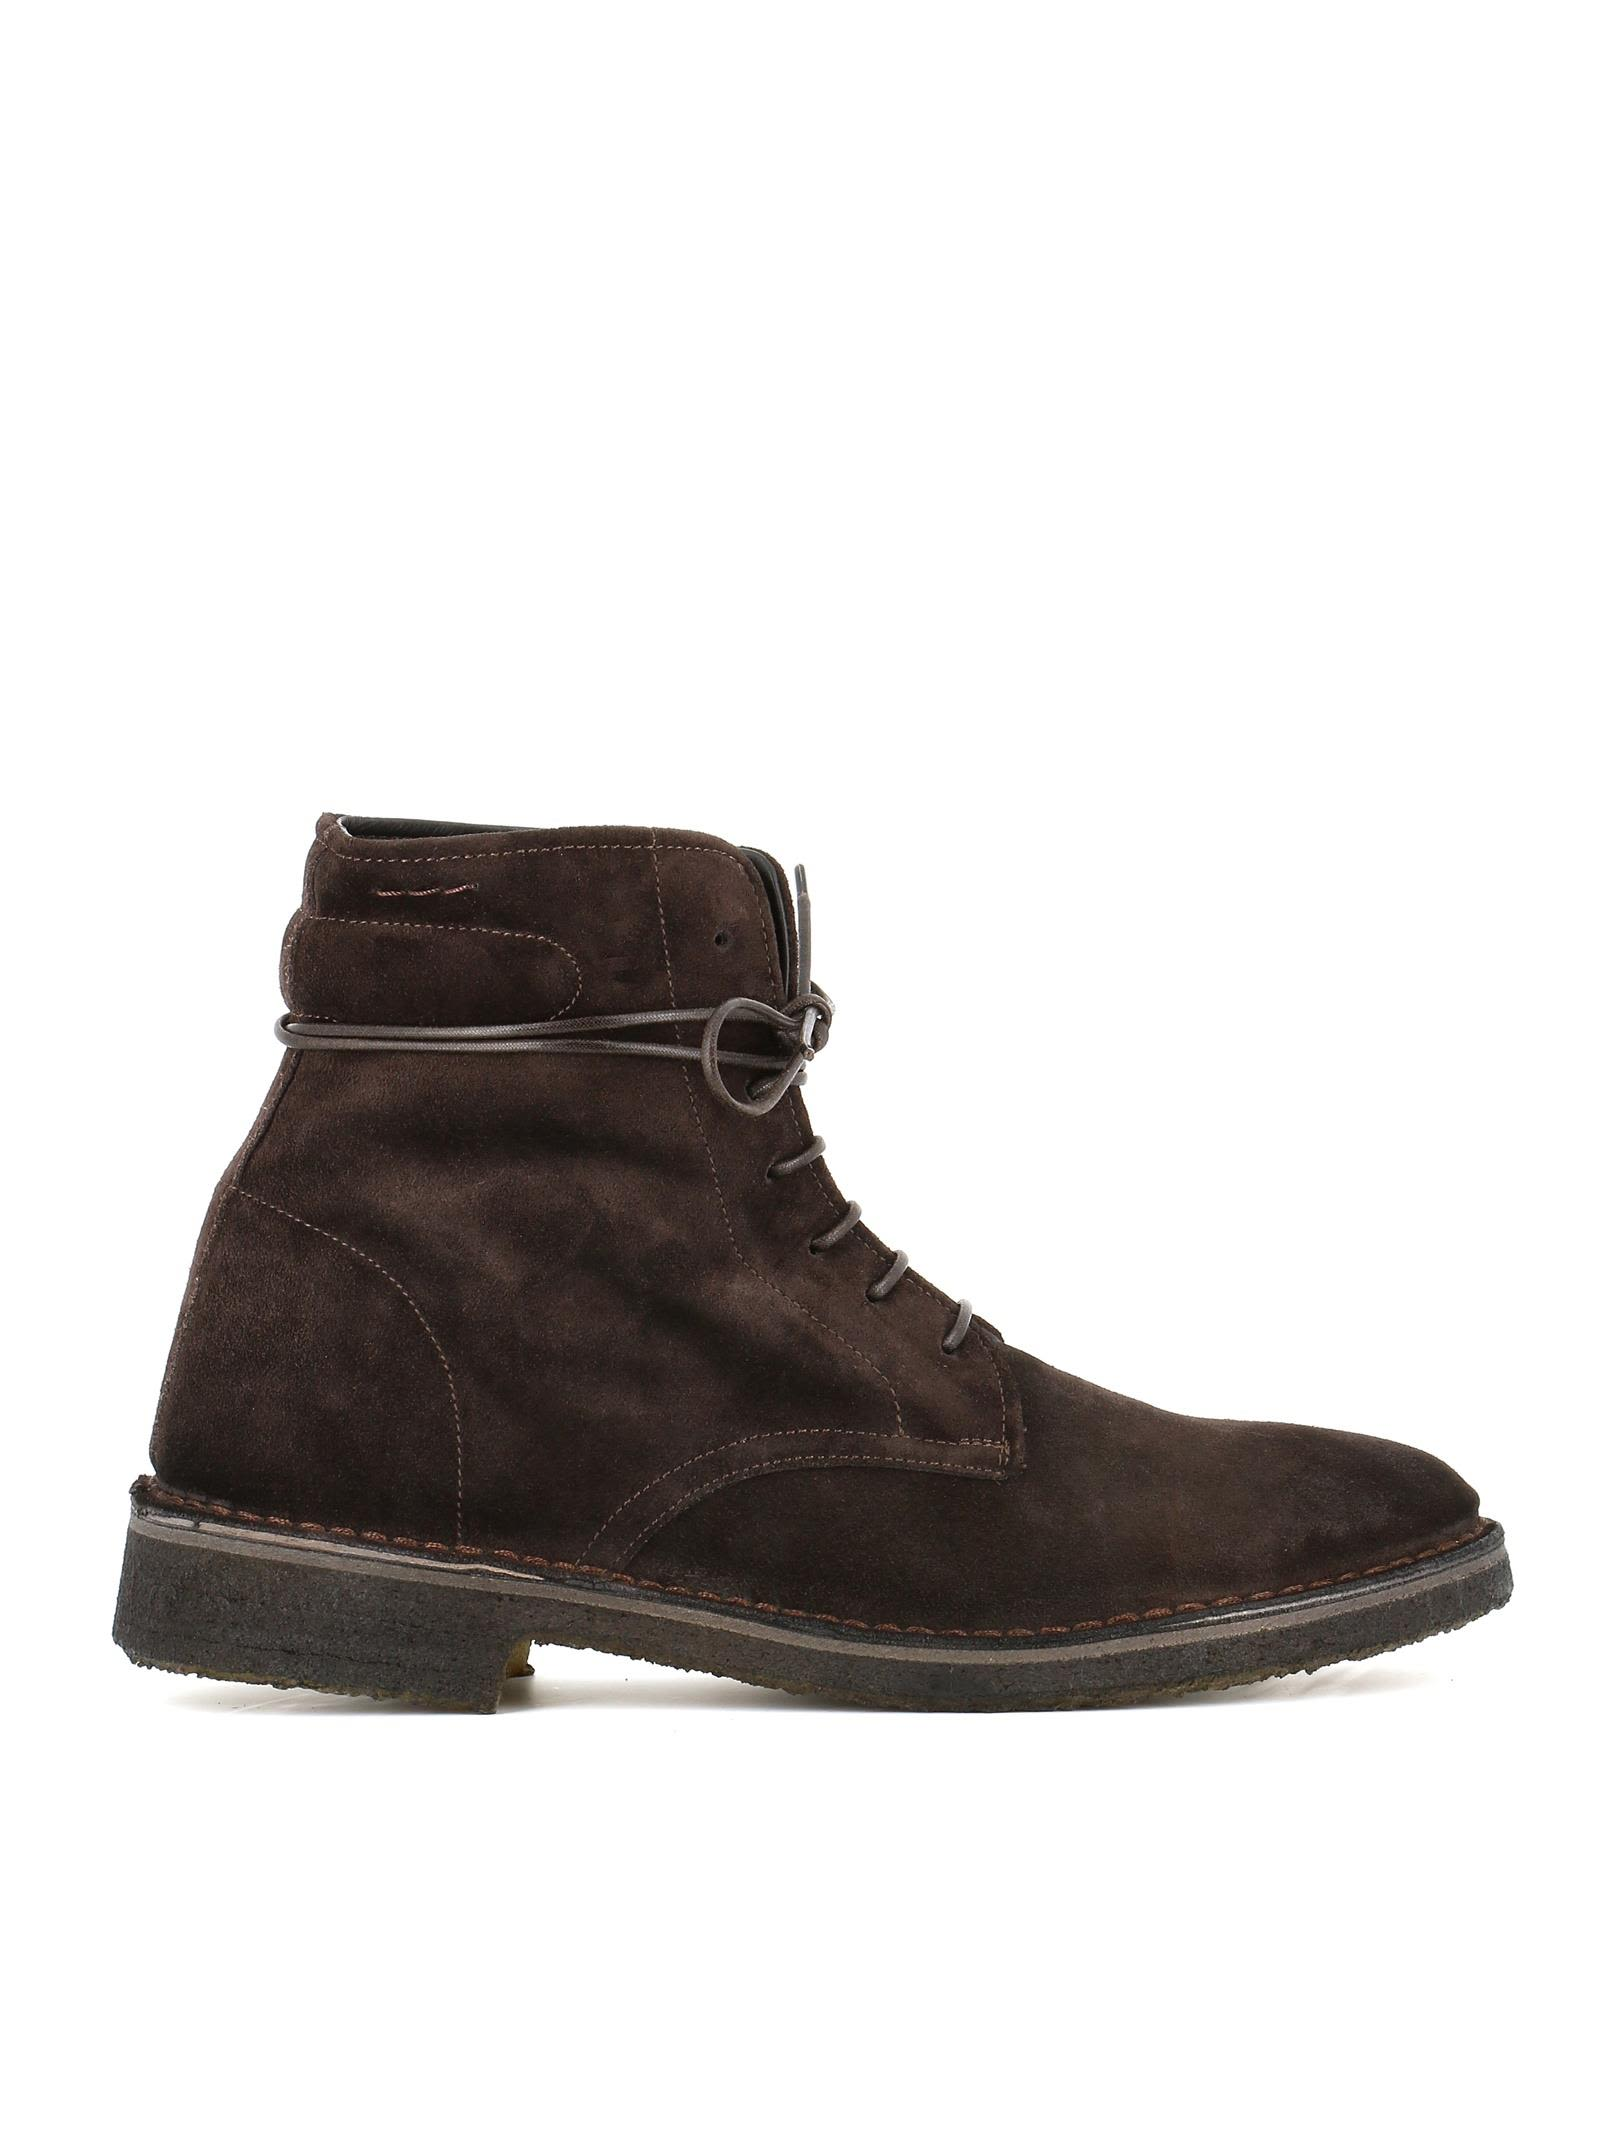 """ALEXANDER HOTTO Lace-Up Boots """"54200X"""" in Brown"""